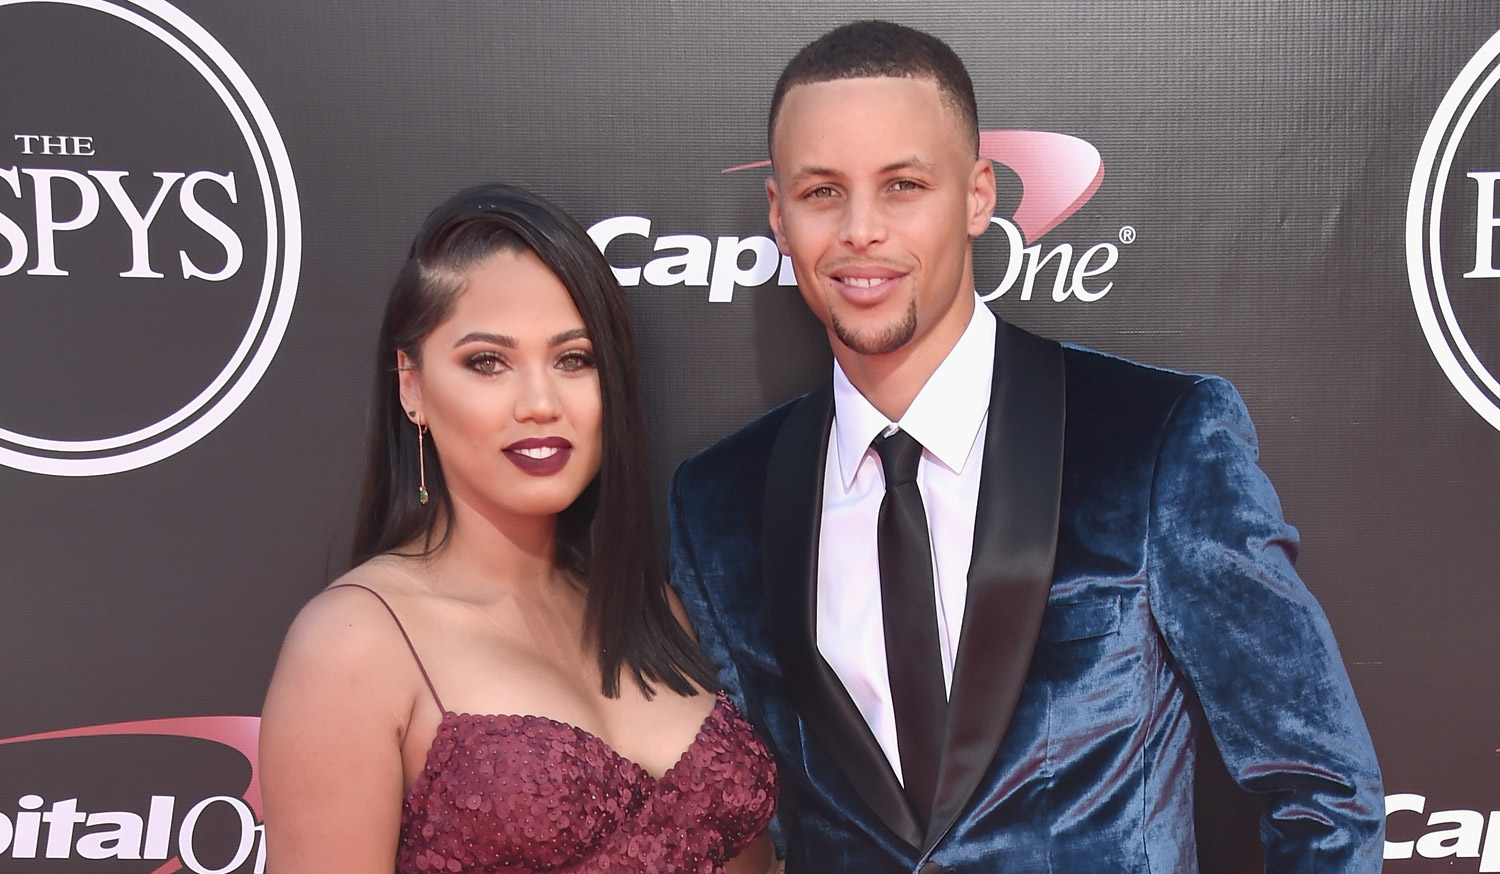 Stephen Curry Amp Wife Ayesha Hit The Espys 2016 Red Carpet